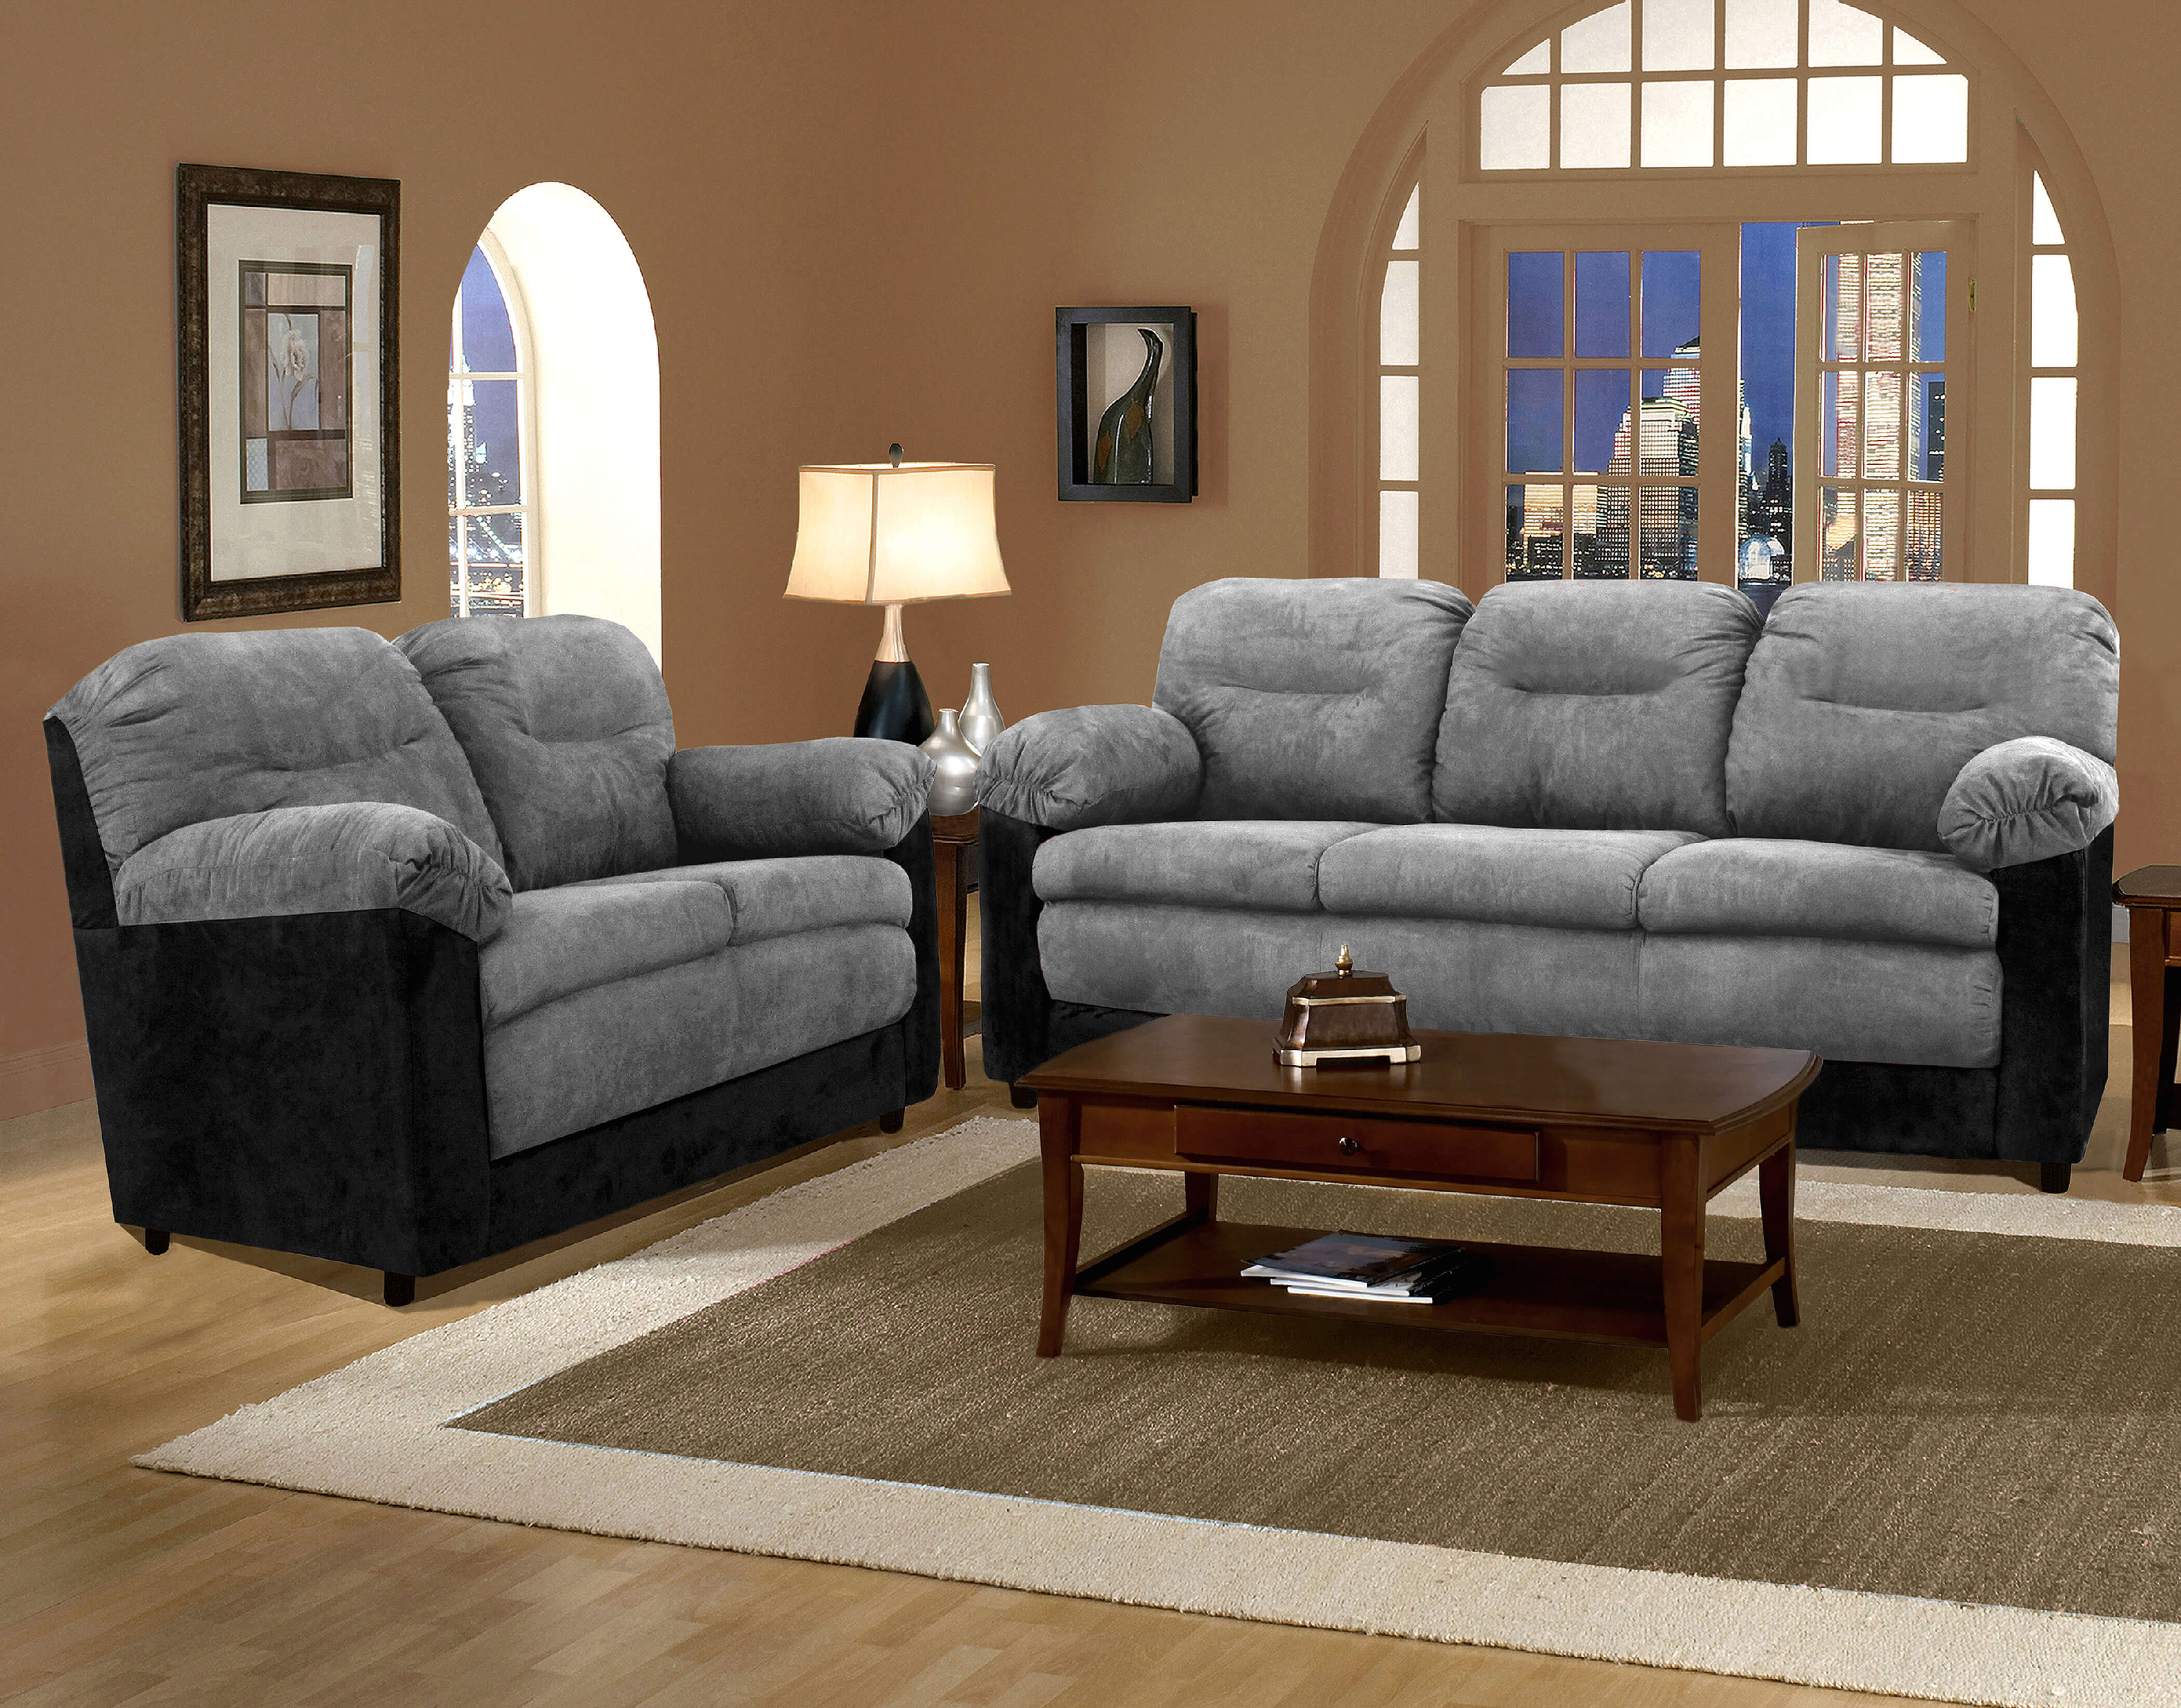 living room sofa and loveseat pune olx bulldozer graphite black sets